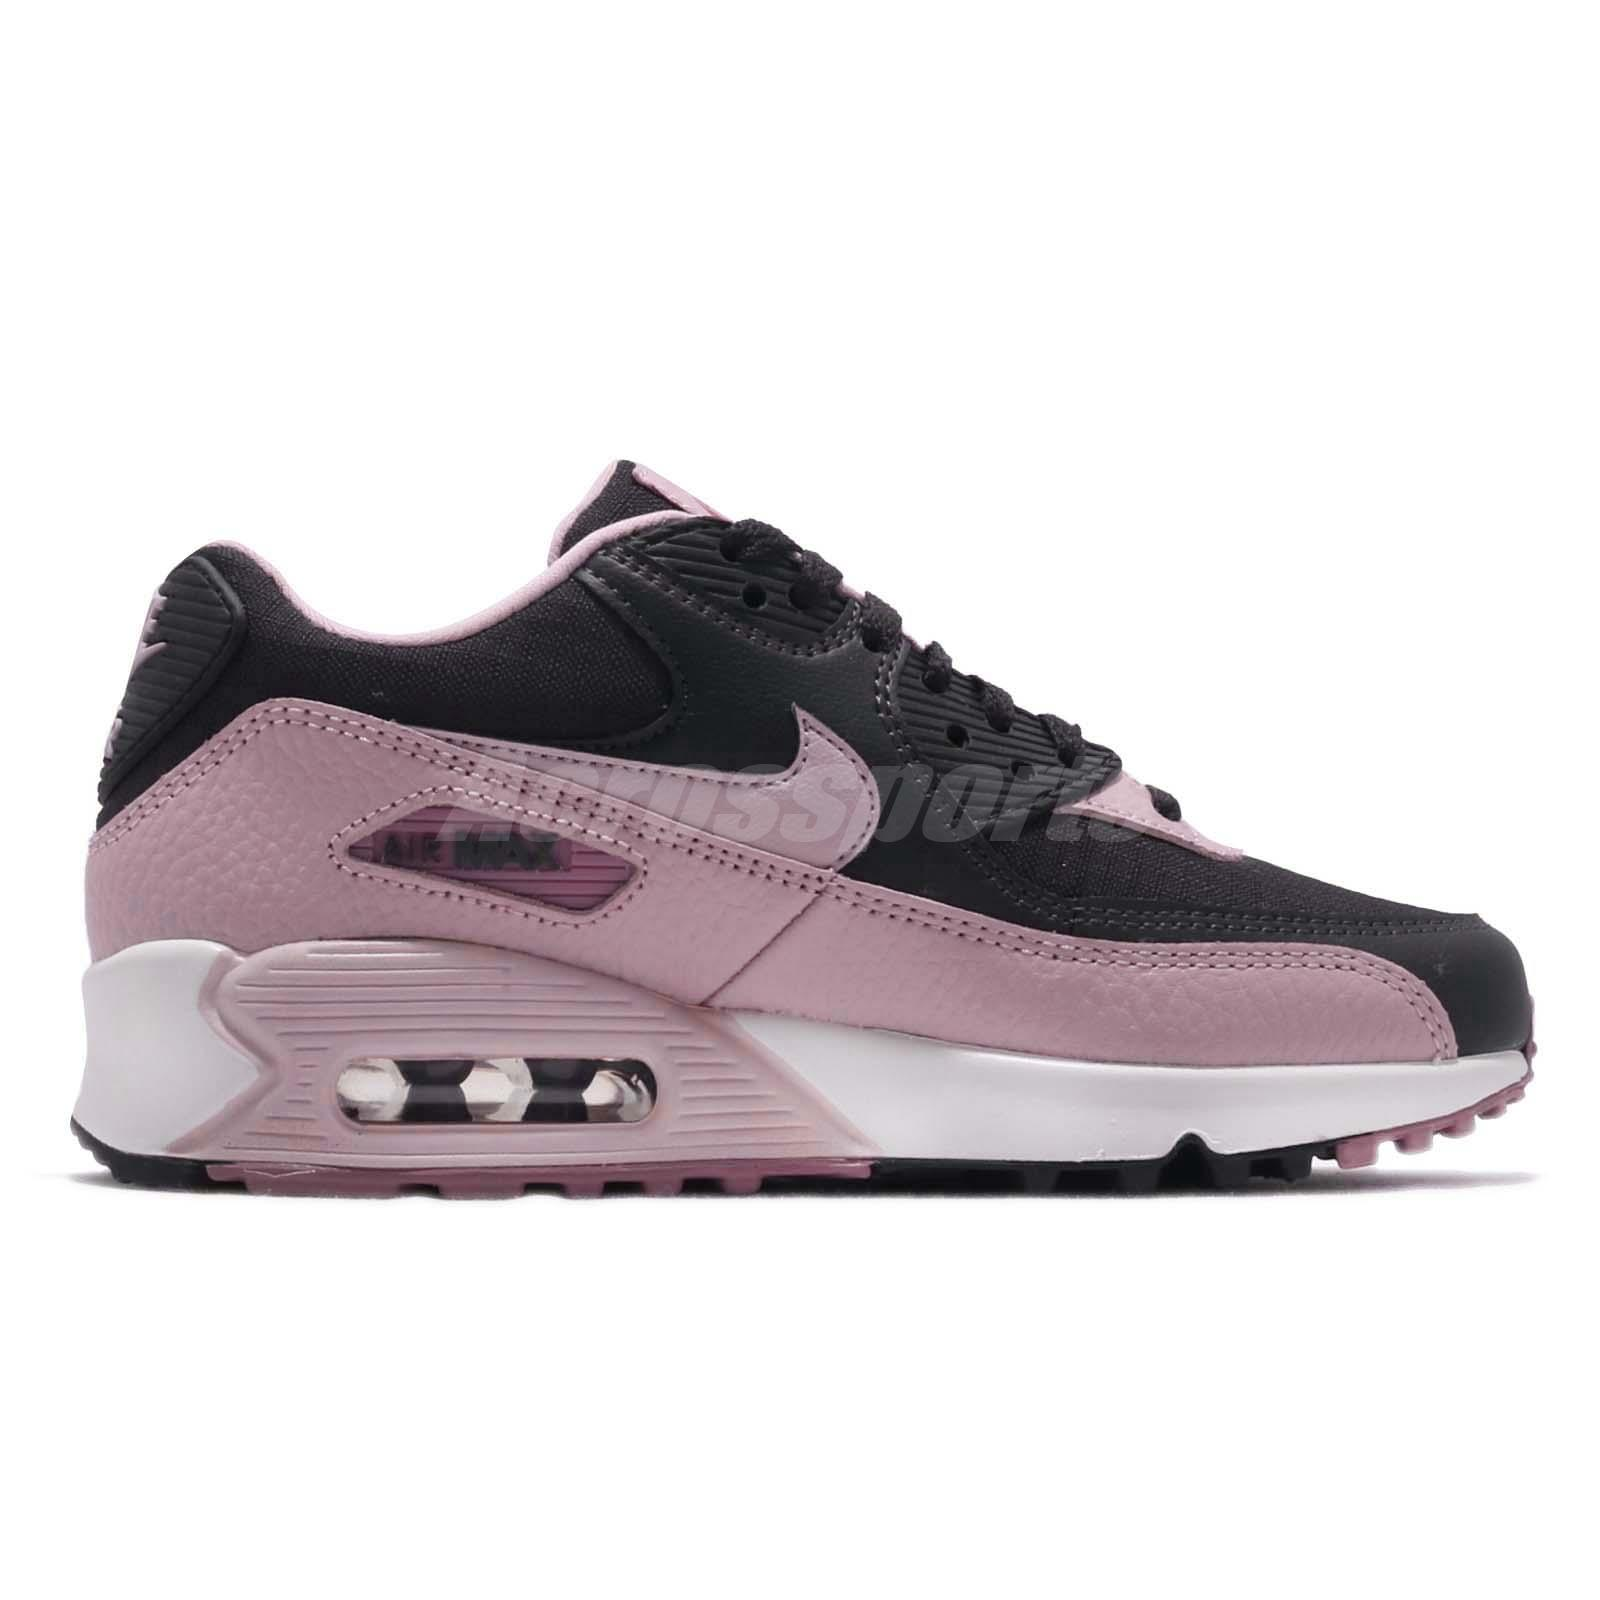 Details about Nike Wmns Air Max 90 Plum Chalk Pink Grey Women Running Shoes Sneaker 325213 059